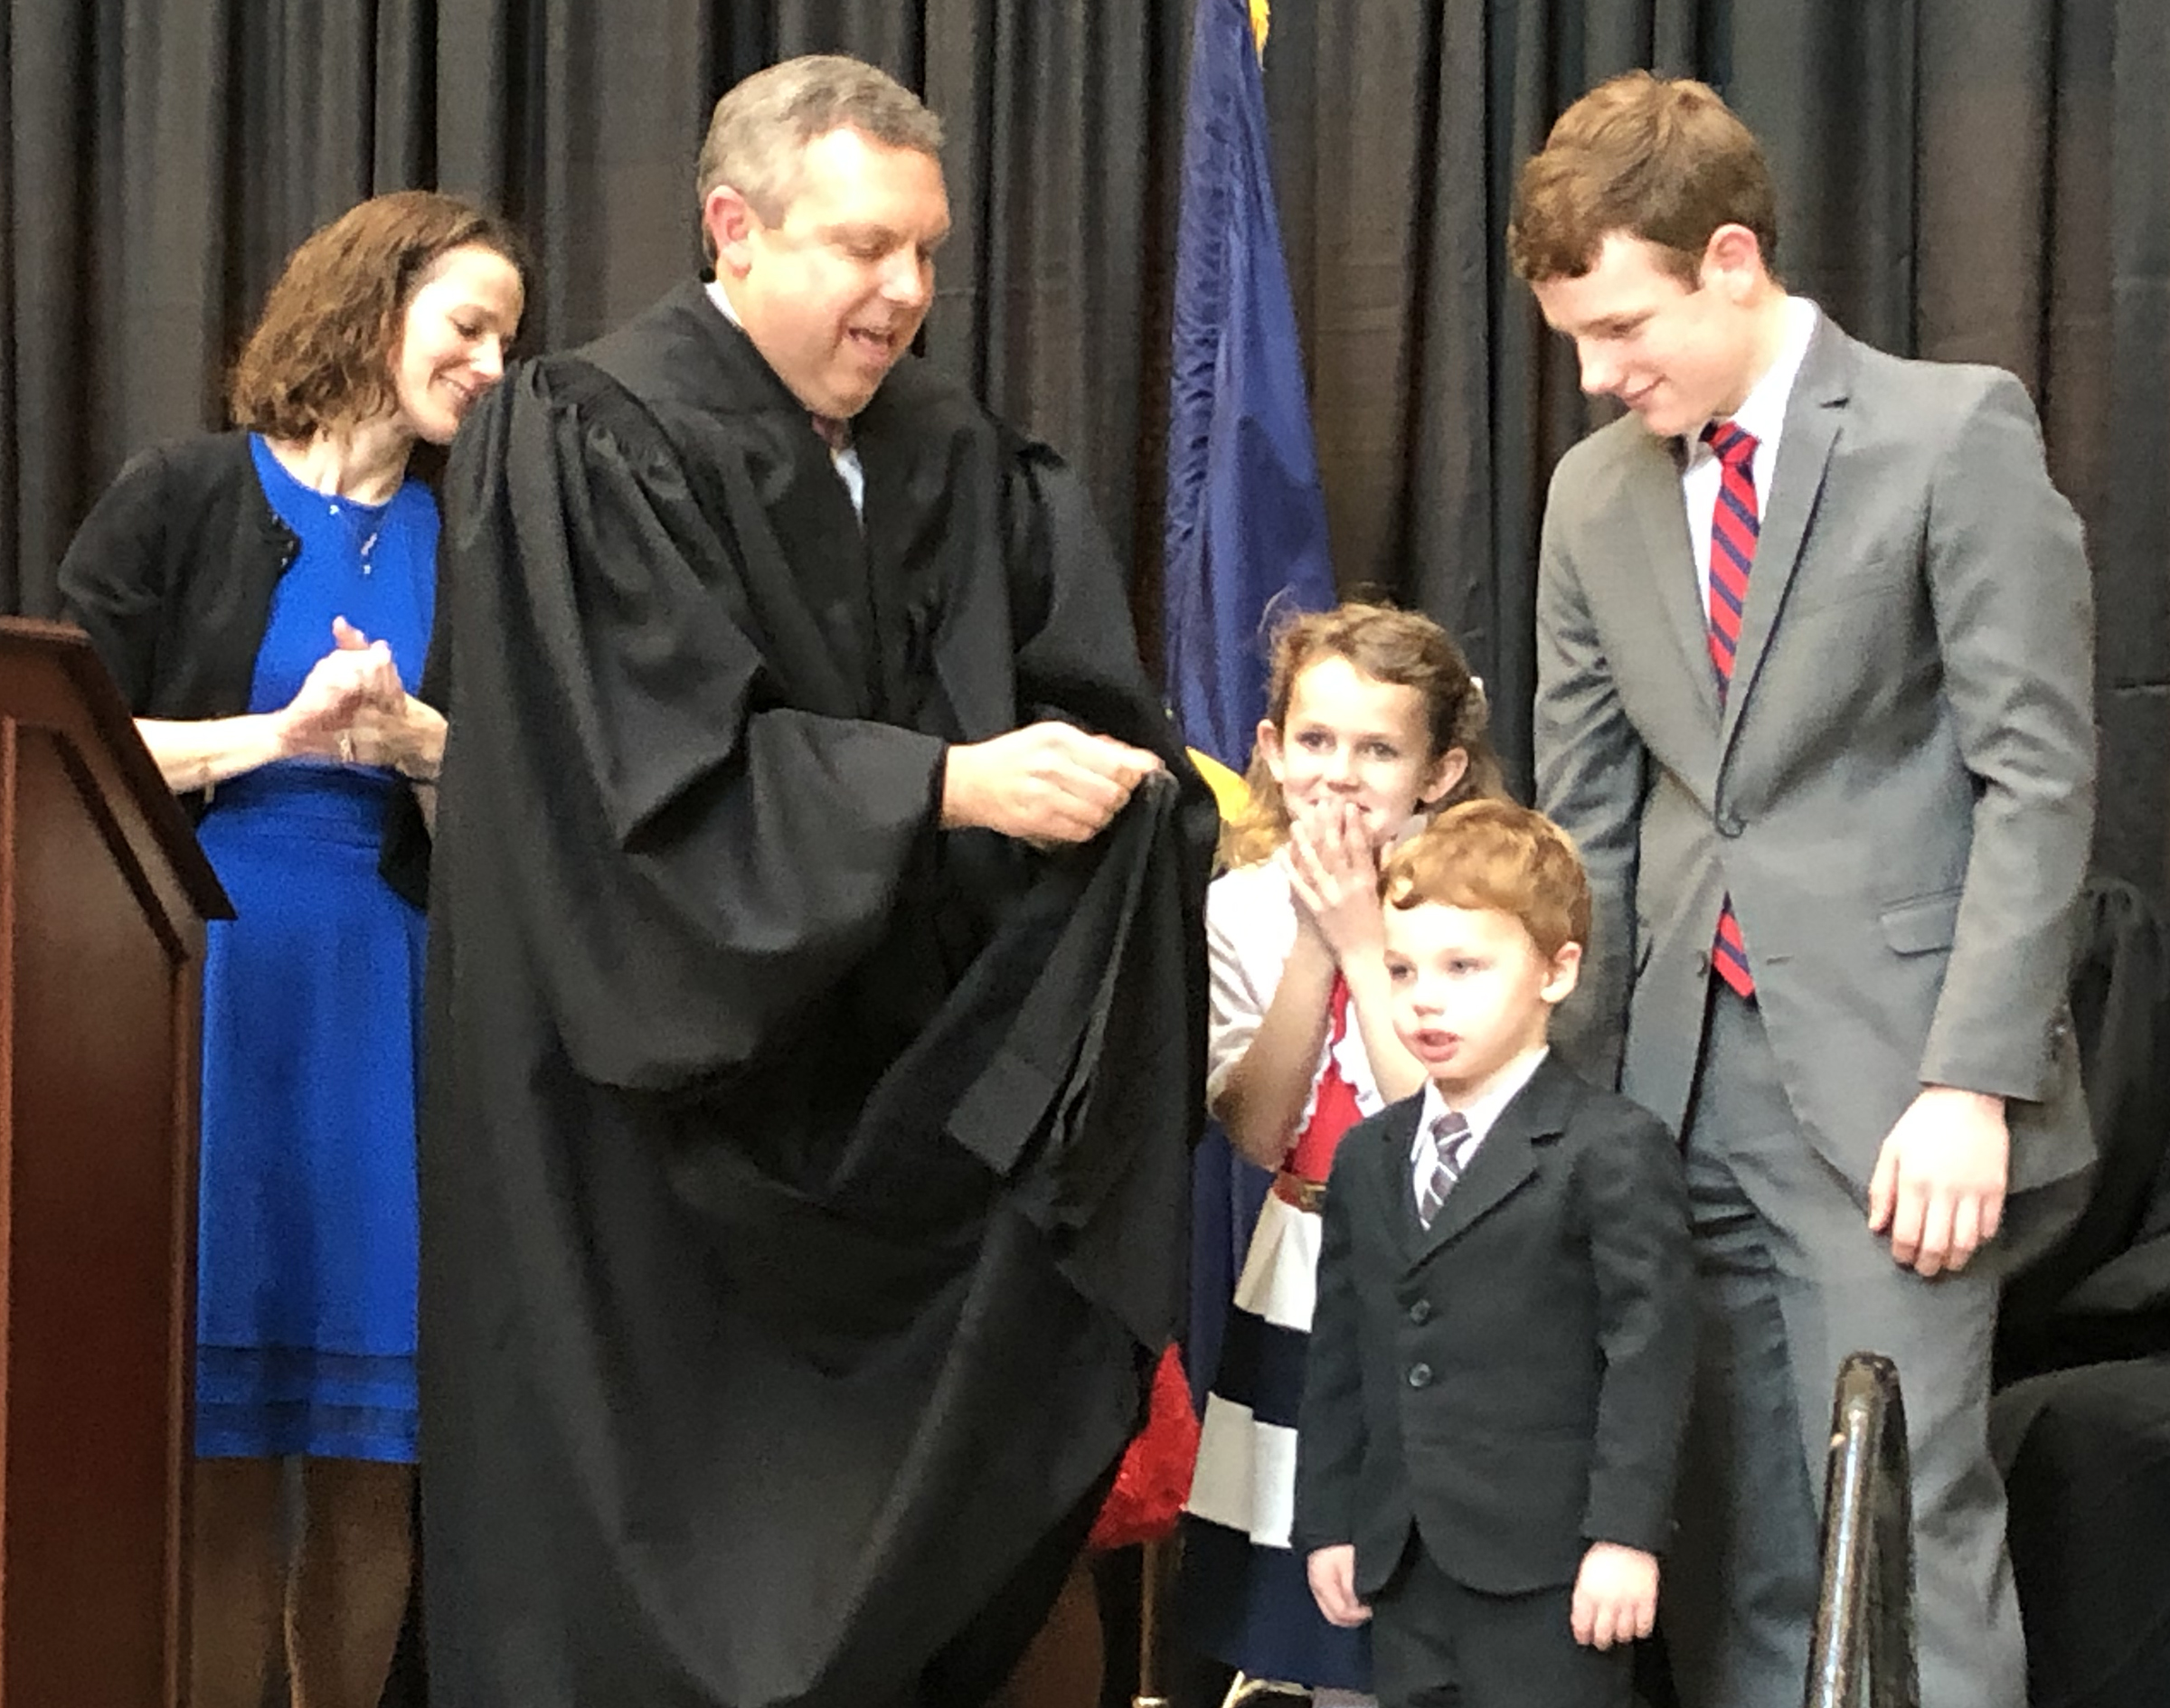 Brian C. Buescher dons his black robes with the help of his family during his investiture ceremony at the Hruska Federal Courthouse on Friday, Nov. 15, 2019. (Photo by Scott Stewart)